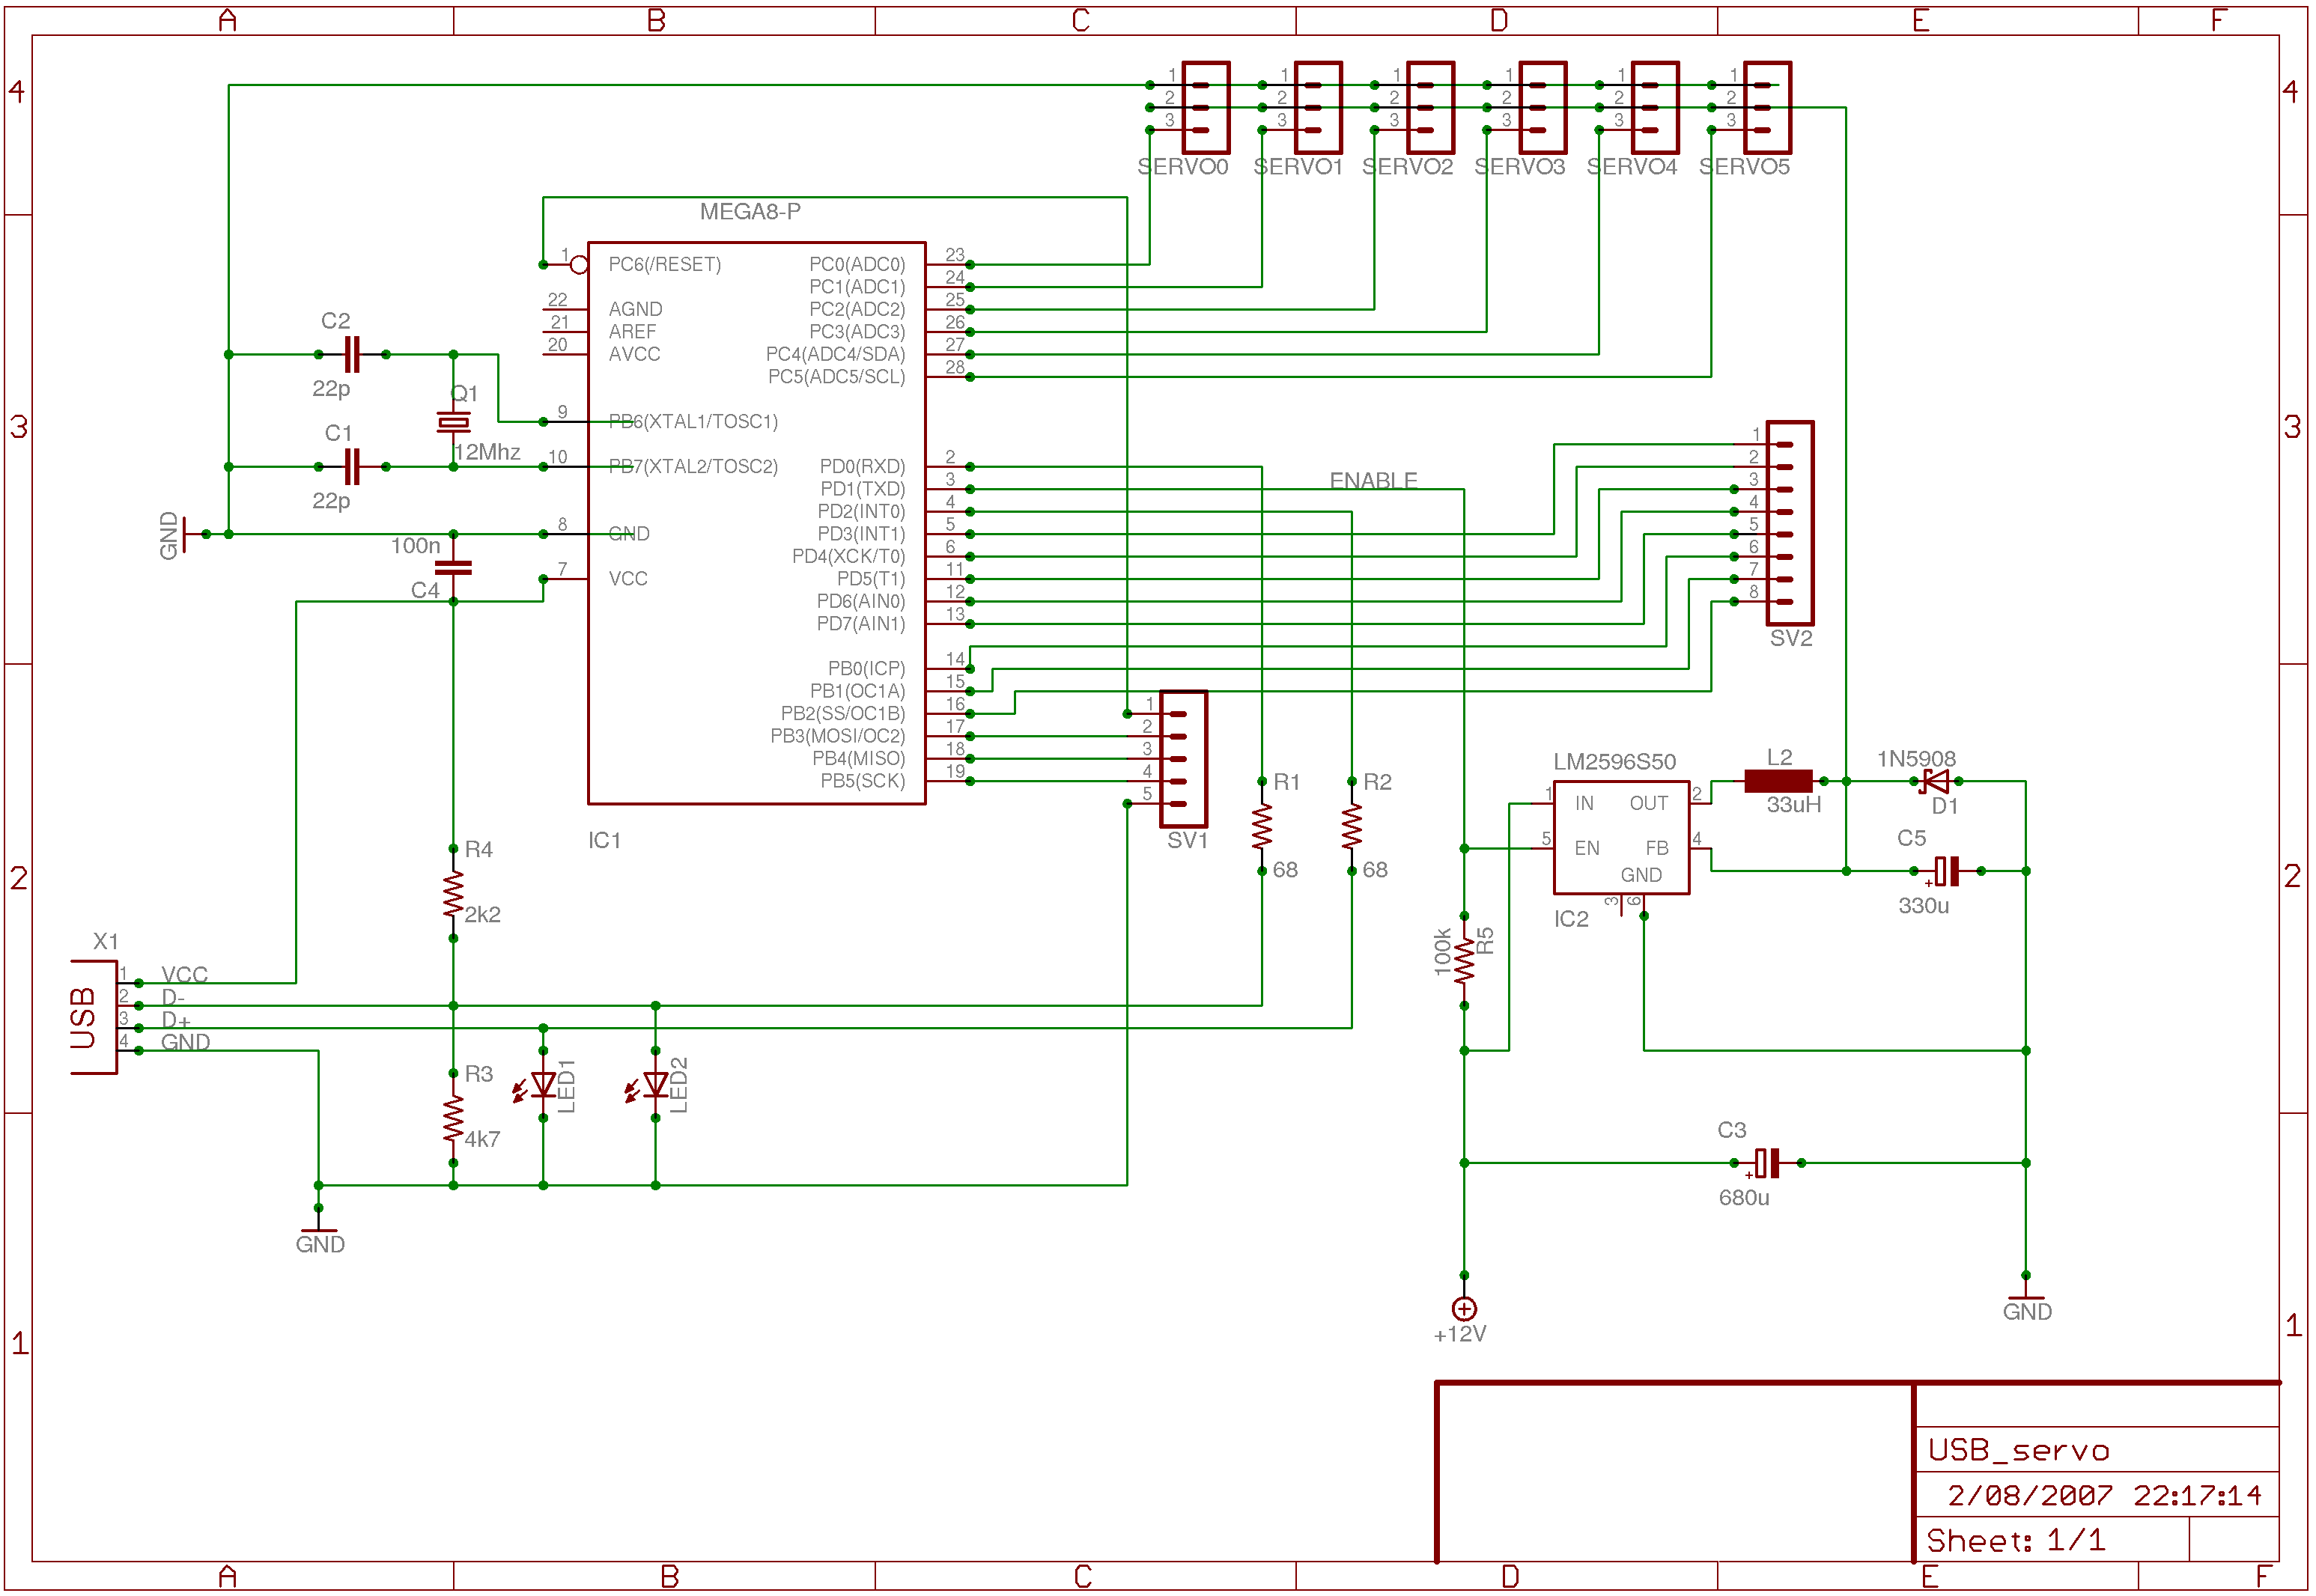 Usb Schematic Symbol | Wiring Diagram on amplifier symbol, quick connect symbol, usb charger schematic, usb type a schematic, usb cable symbol, block valve symbol, usb schematic diagram, usb cad symbol, usb cable schematic, usb port diagram, capacitor circuit symbol, usb 2.0 cable diagram, usb wiring schematic, usb to rs232 schematic, usb 3.0 pinout diagram, usb power symbol, usb charger circuit, usb connector schematic, usb 3.0 wiring-diagram, usb wire diagram and function,